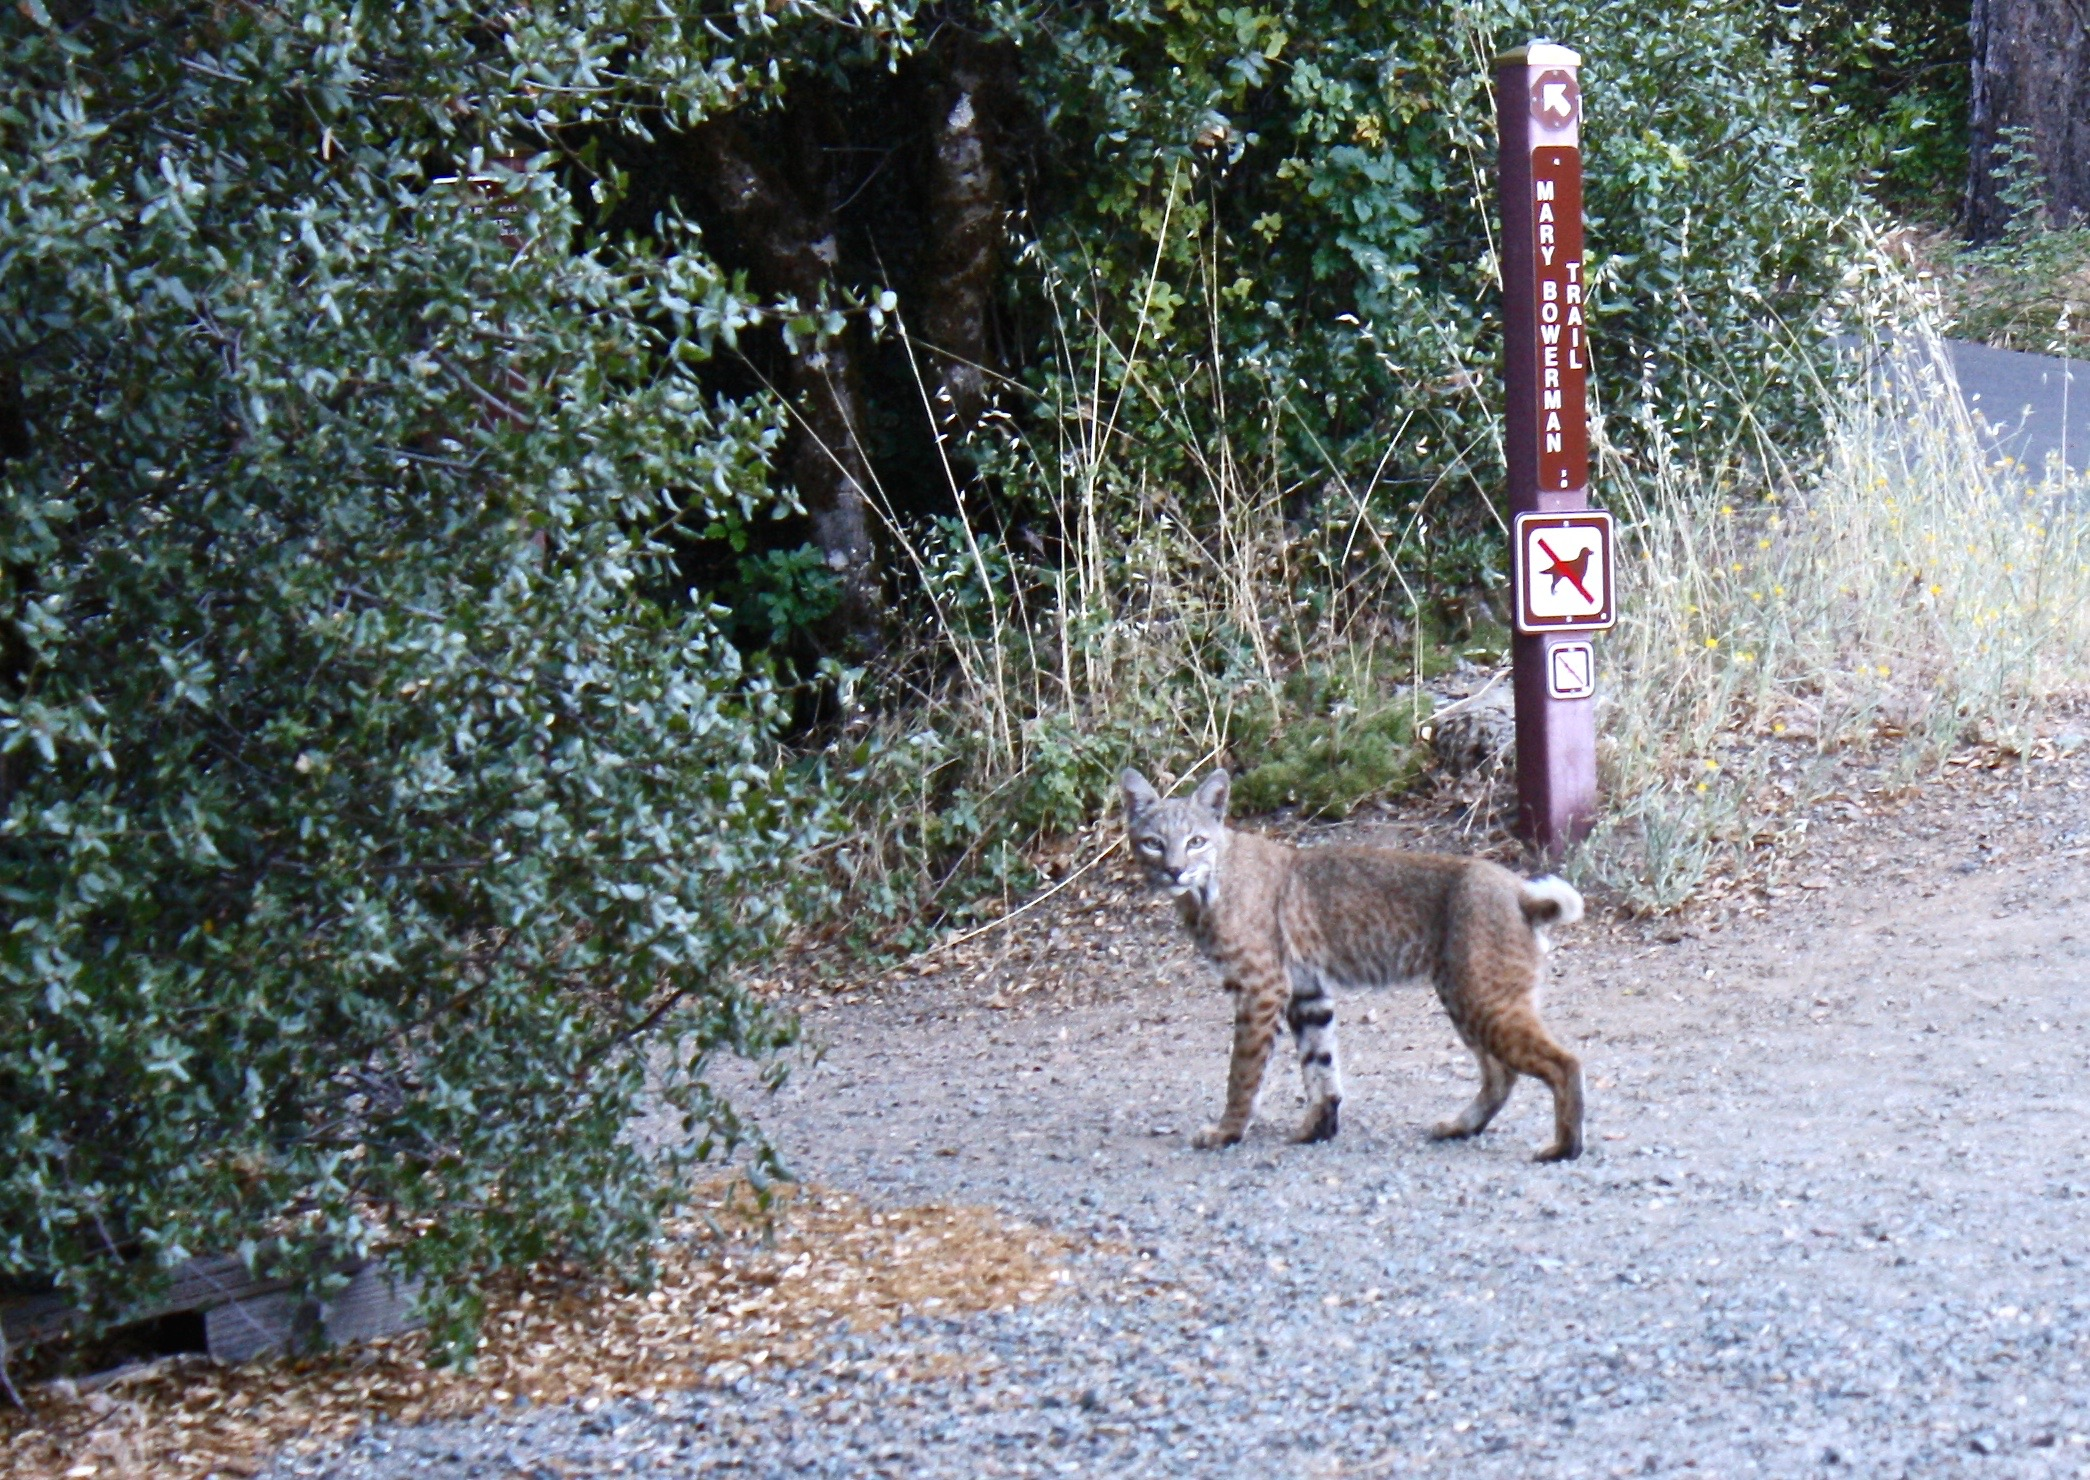 Bobcat, Mt. Diablo State Park. (And yes, this is why they don't allow little Fifi to mosey down the Mary Bowerman Trail.)